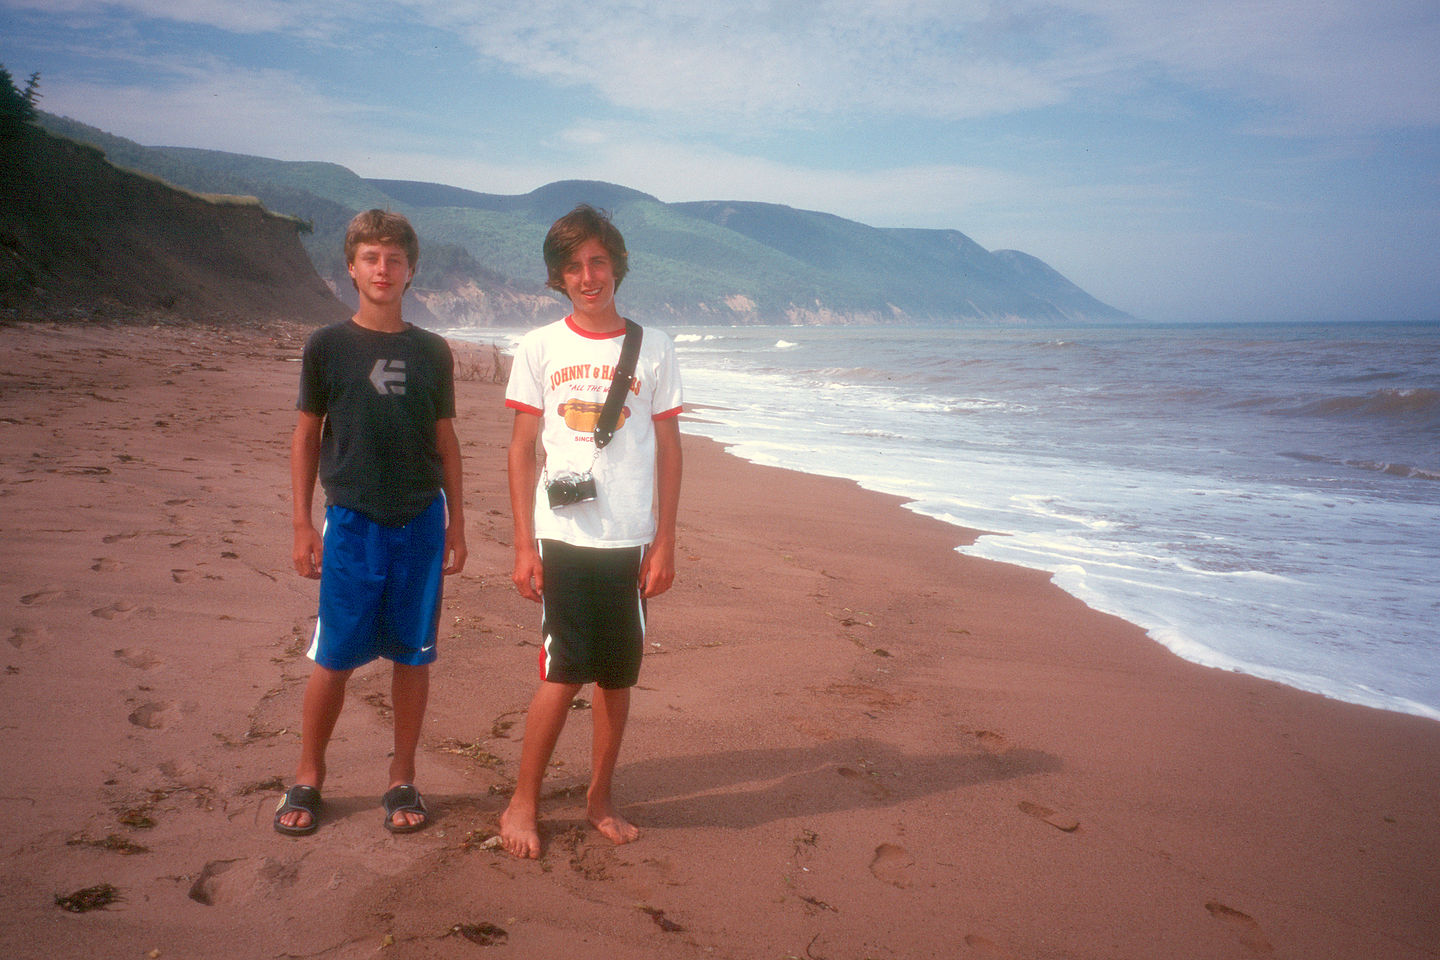 Boys on beach at Cabot Landing